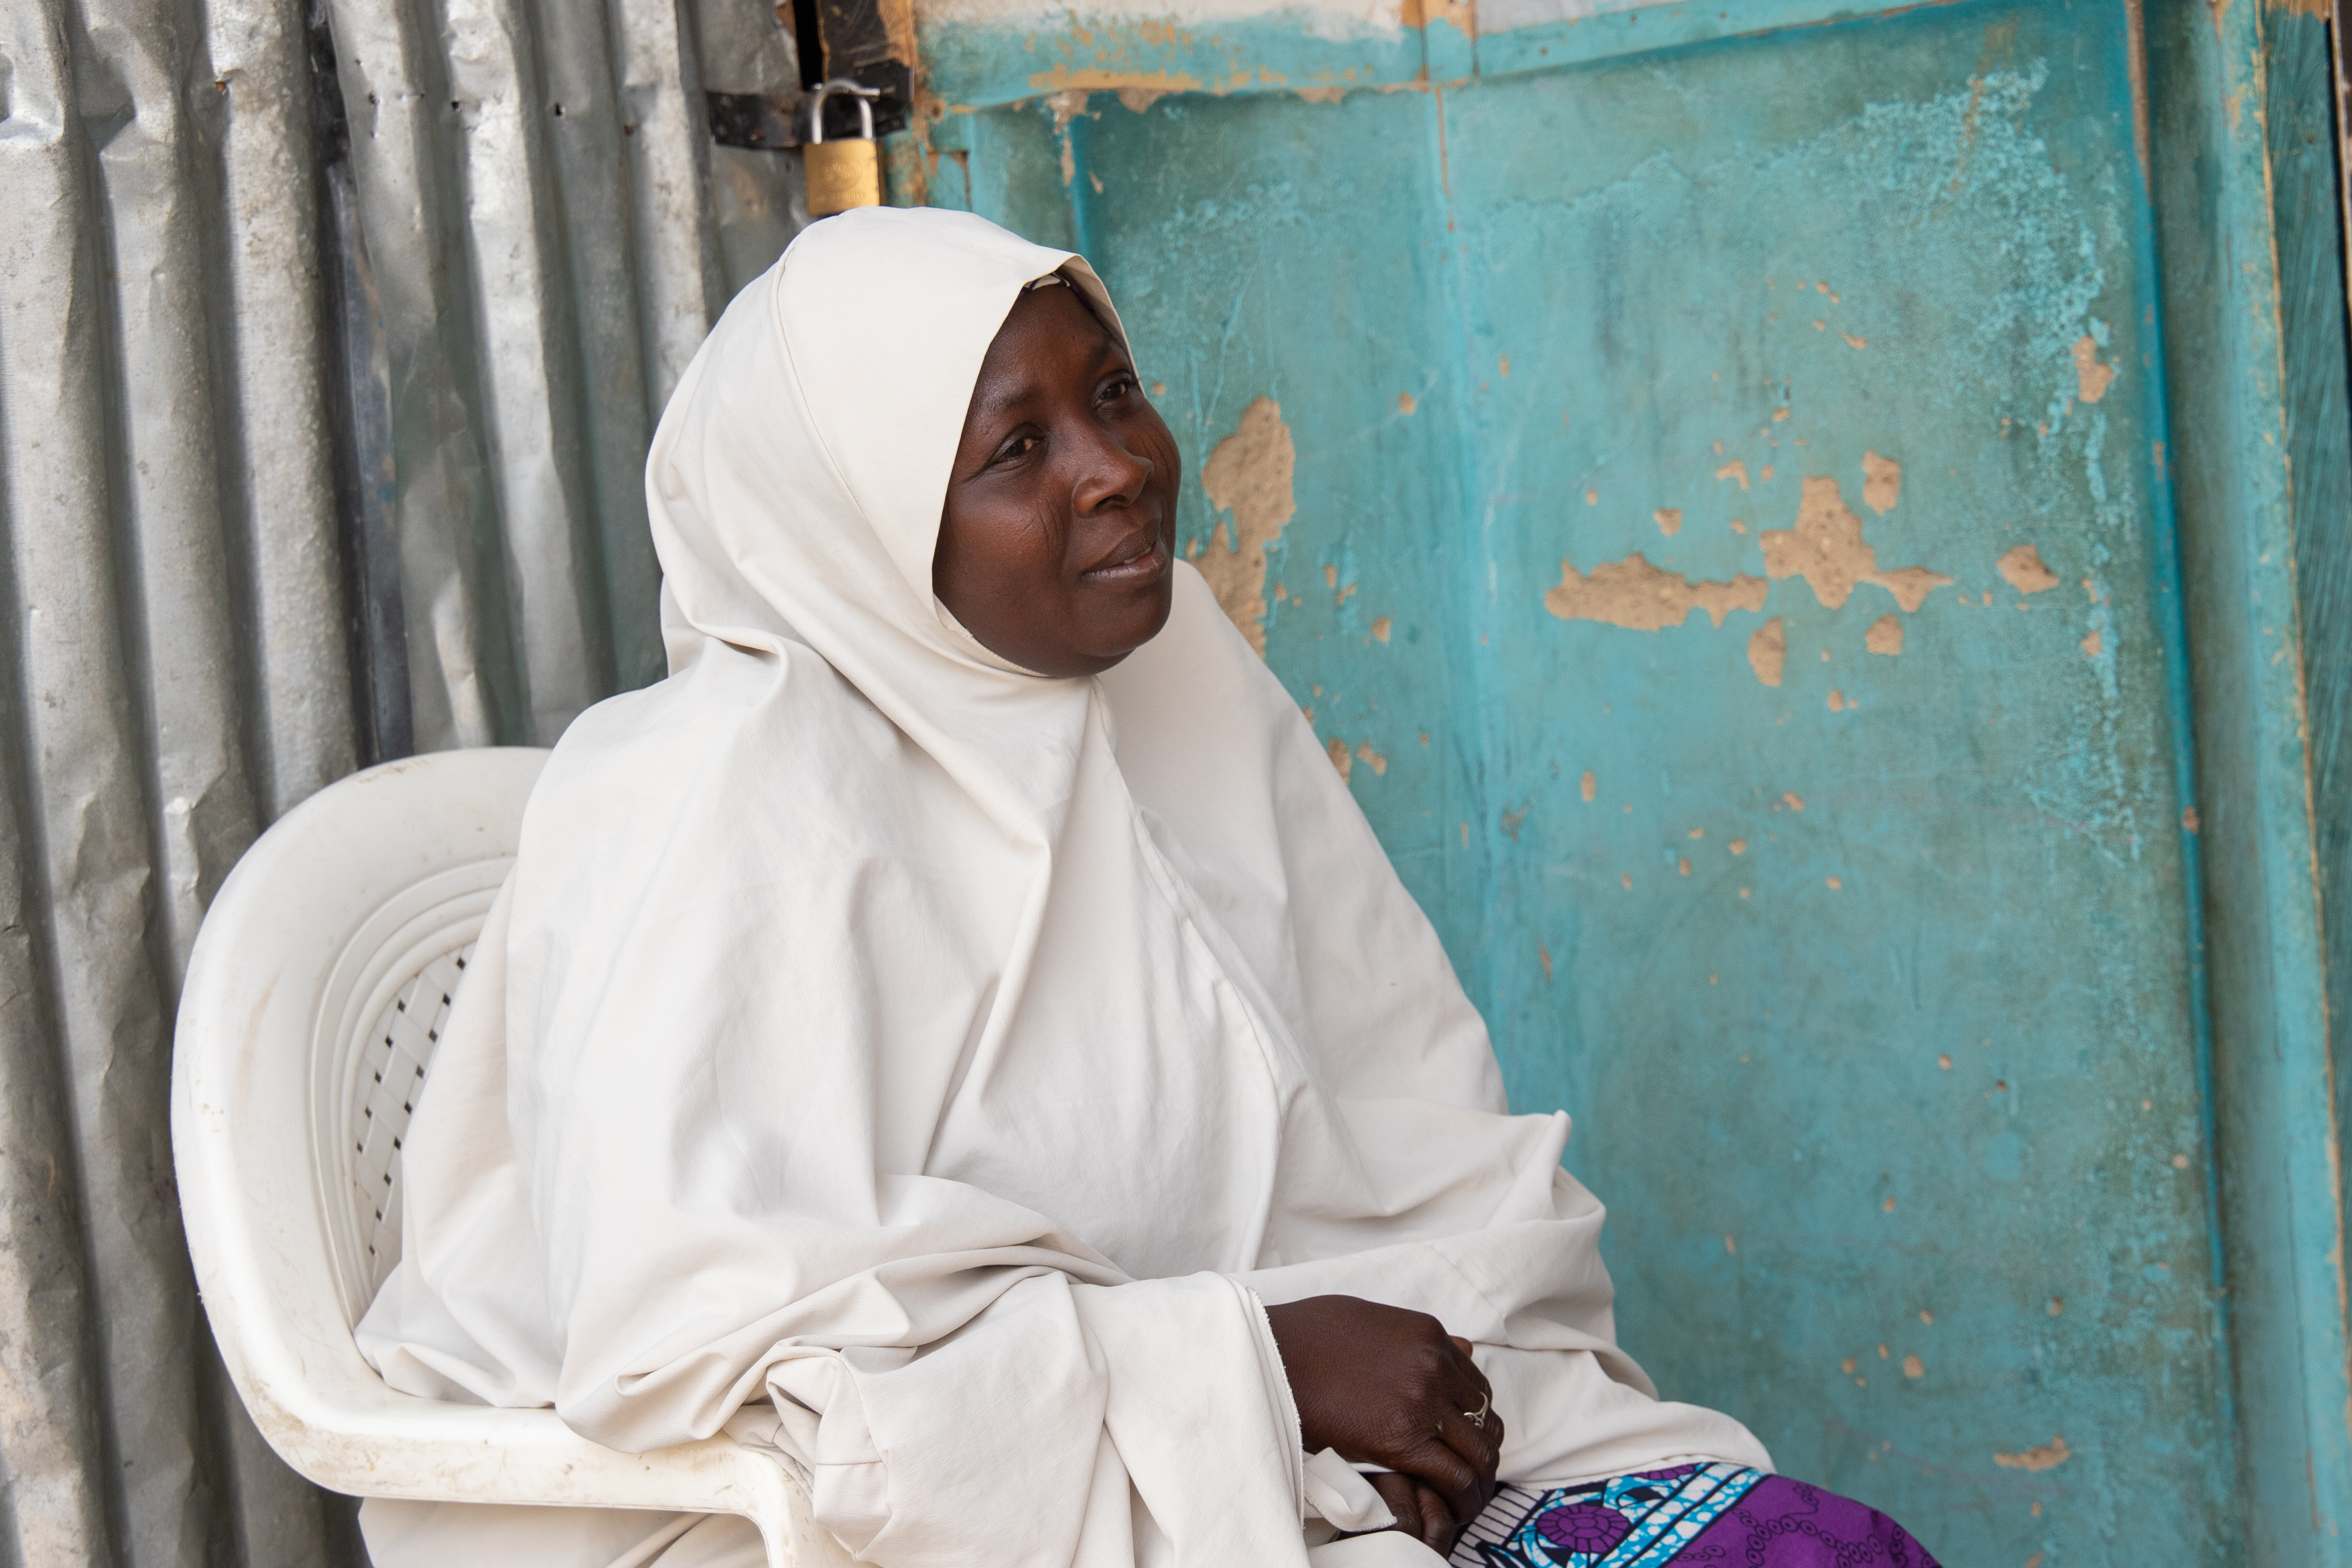 Hajara fled her village with her children seven year ago when non-state armed groups attacked the town